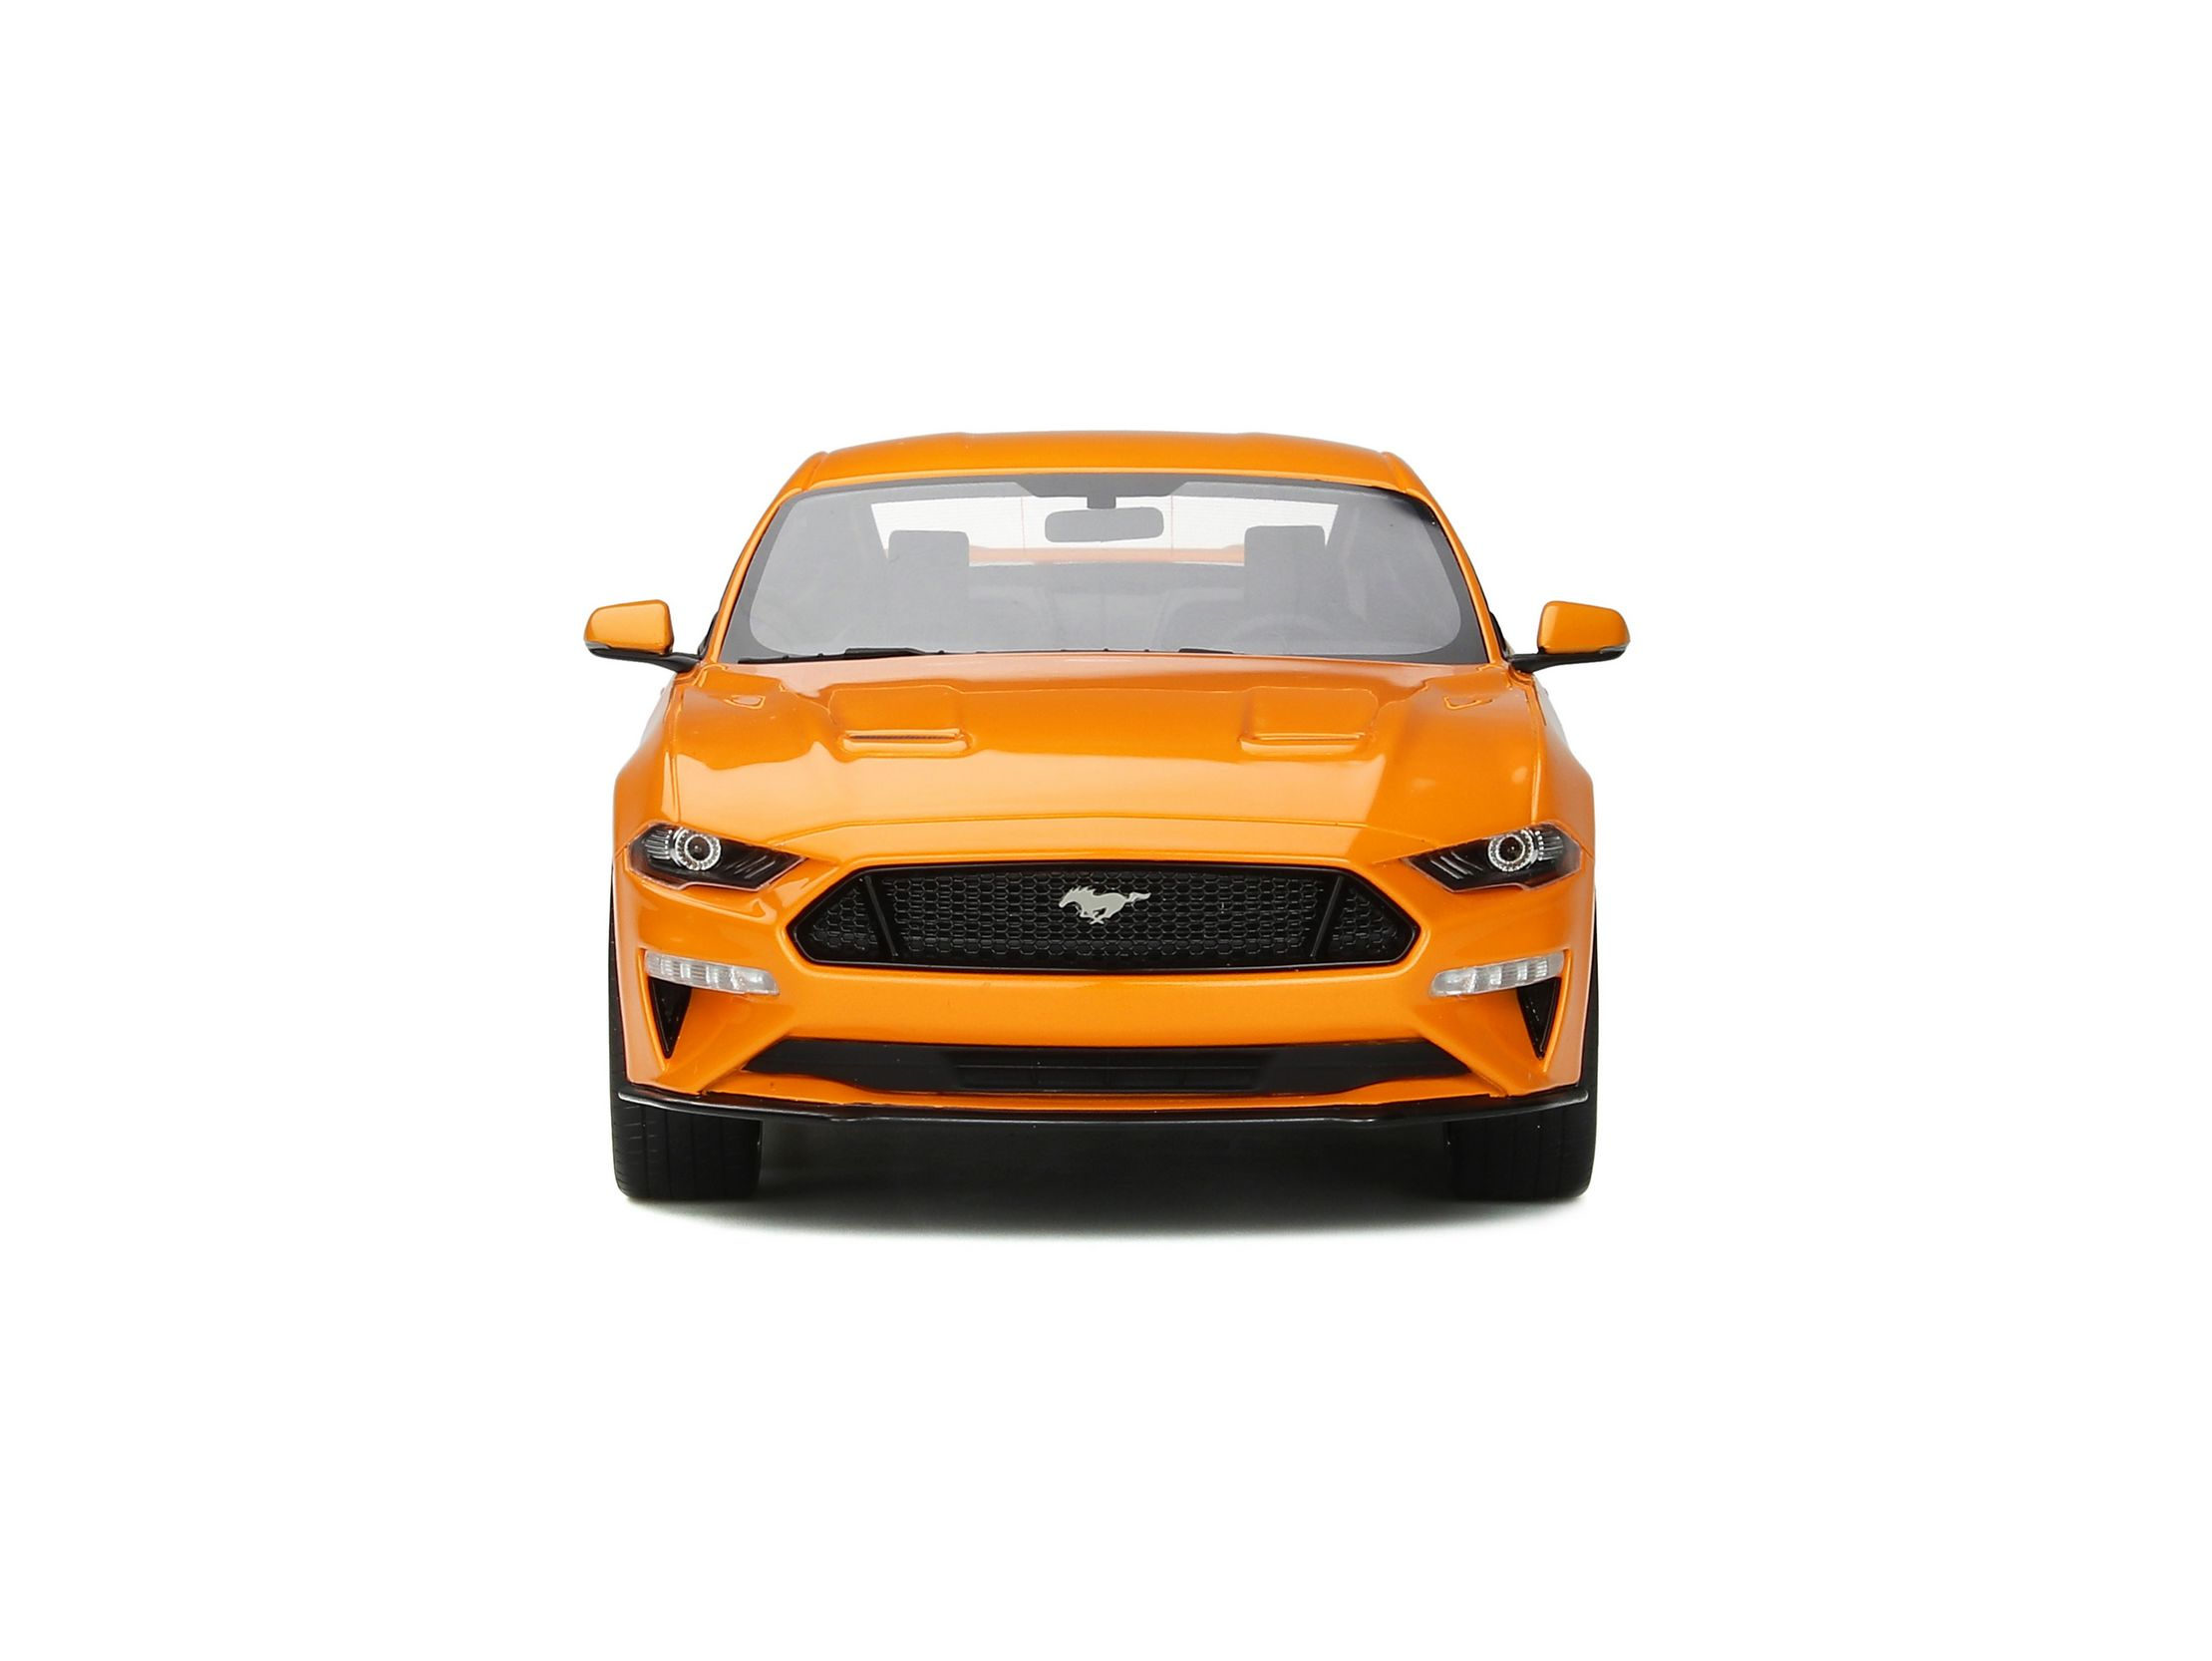 2019 Ford Mustang - Model Car Collection